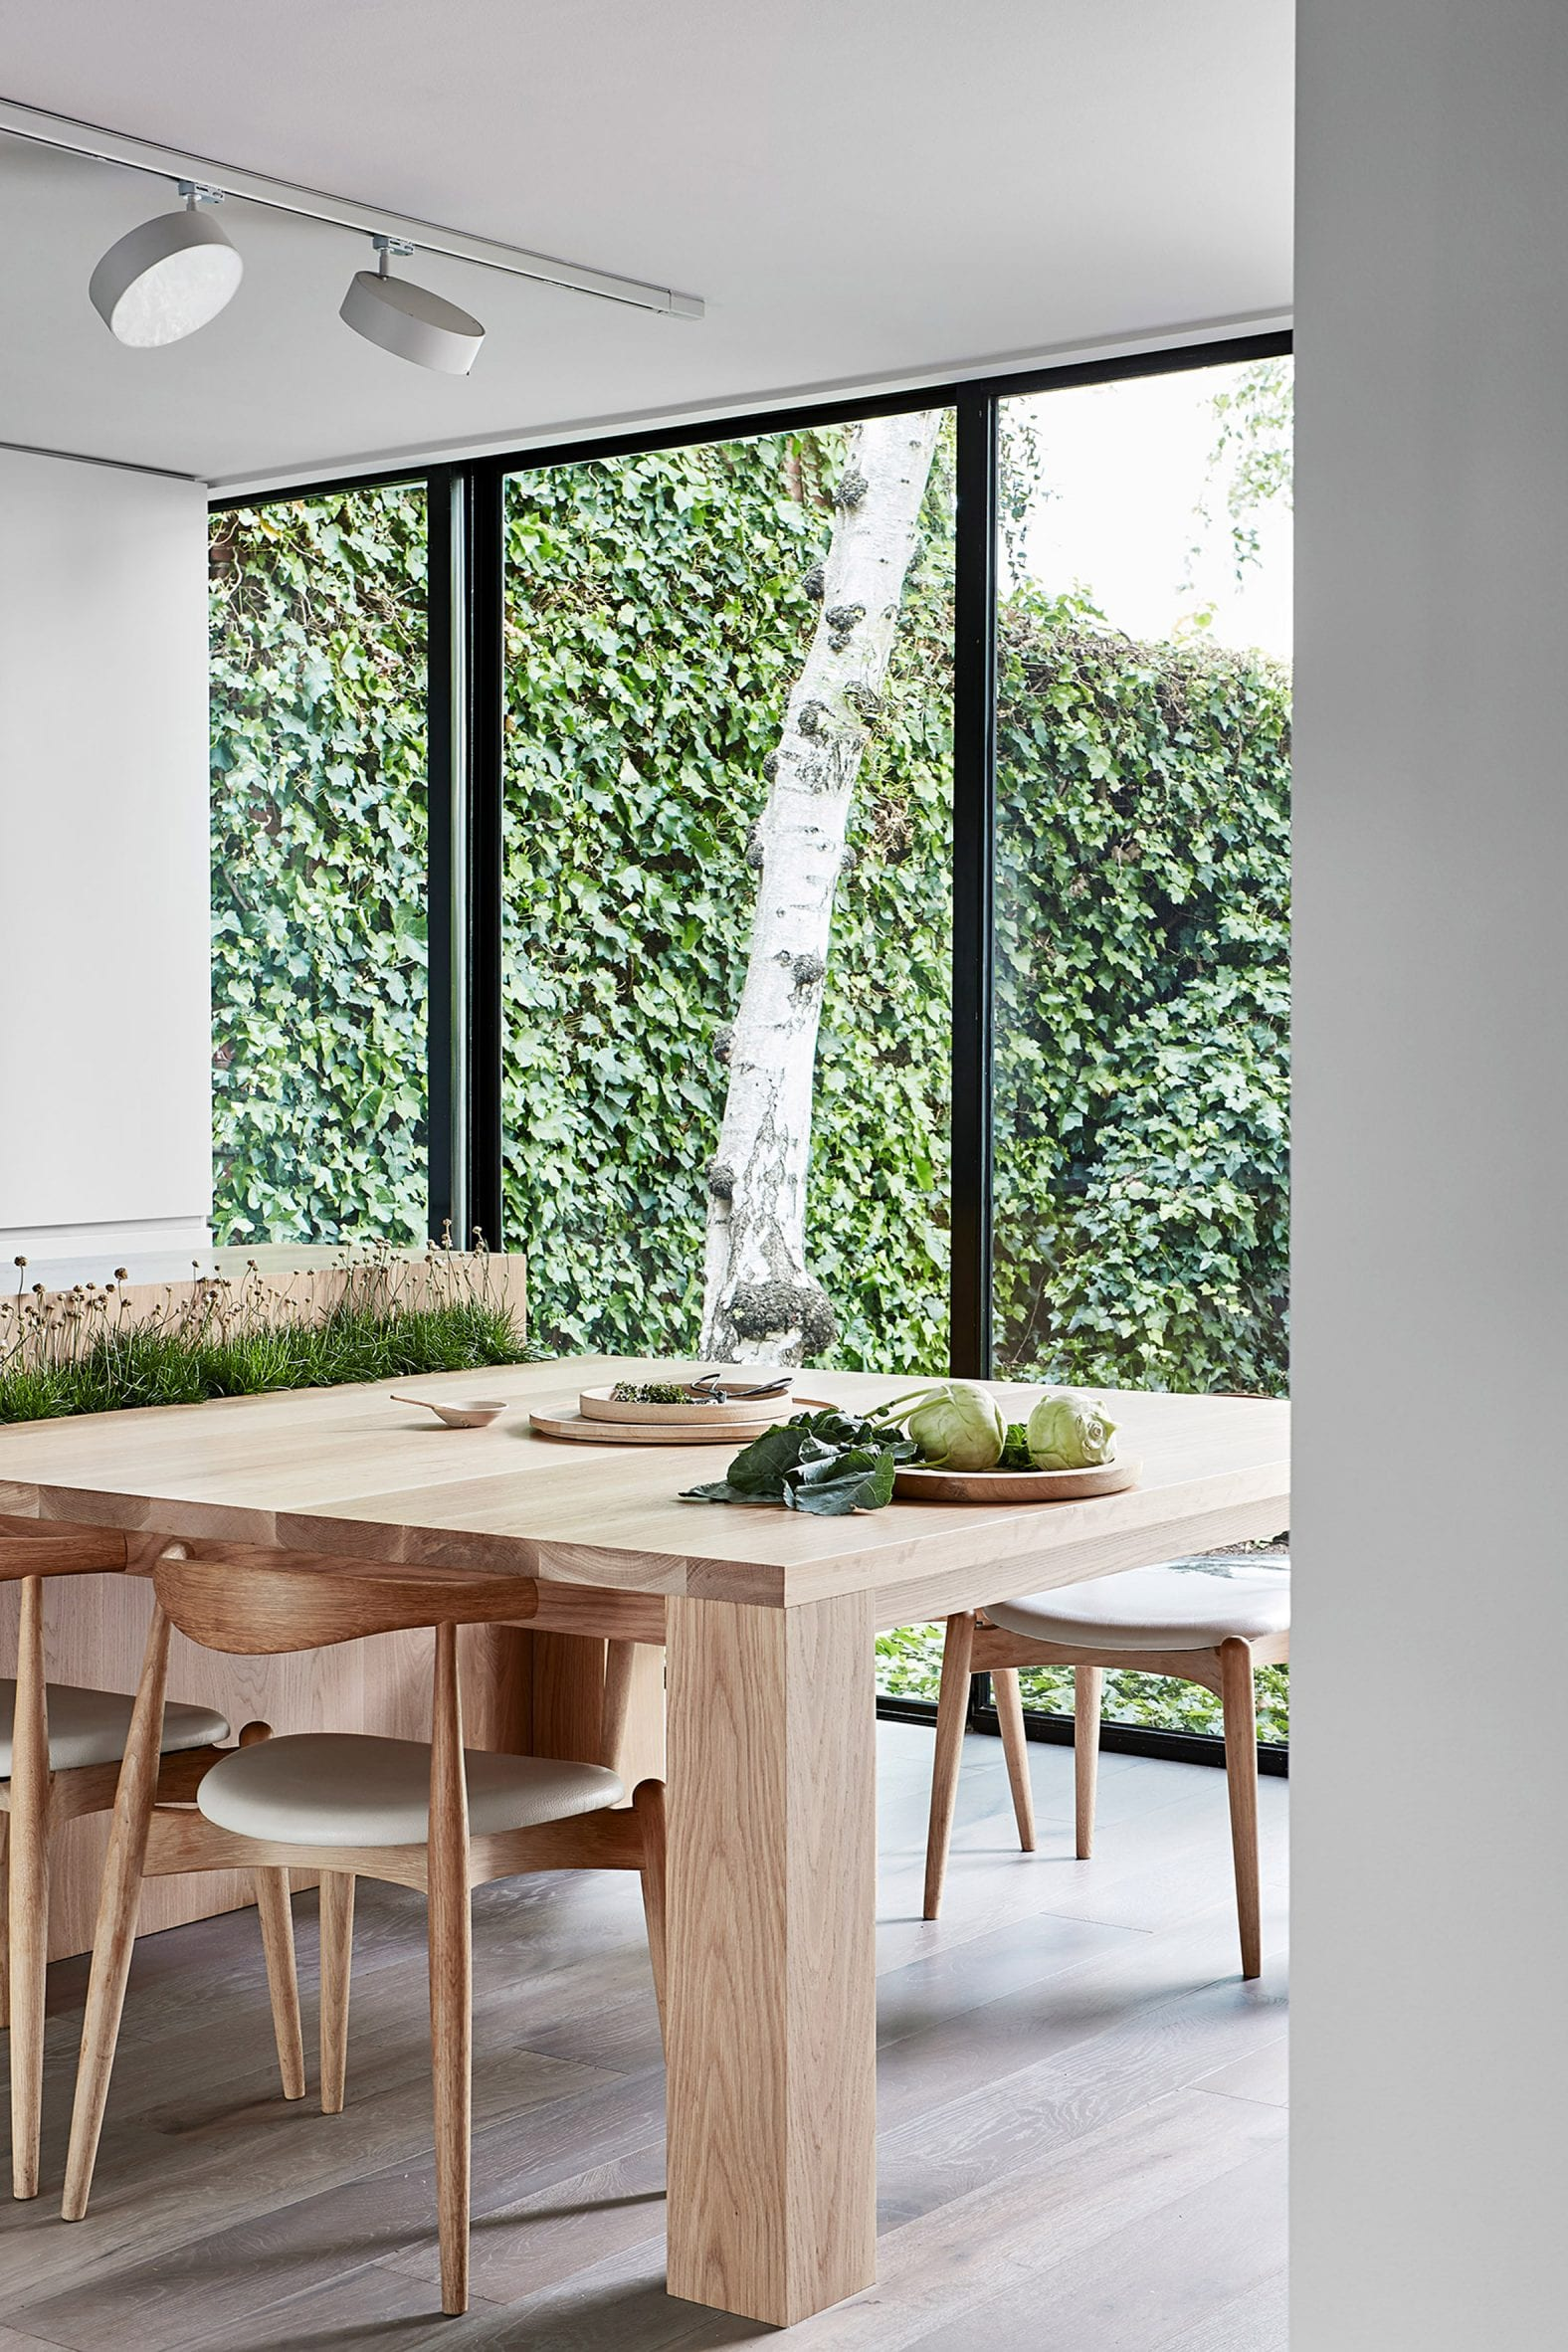 Kitchen interior Studio Four with wooden chairs and table and view of garden